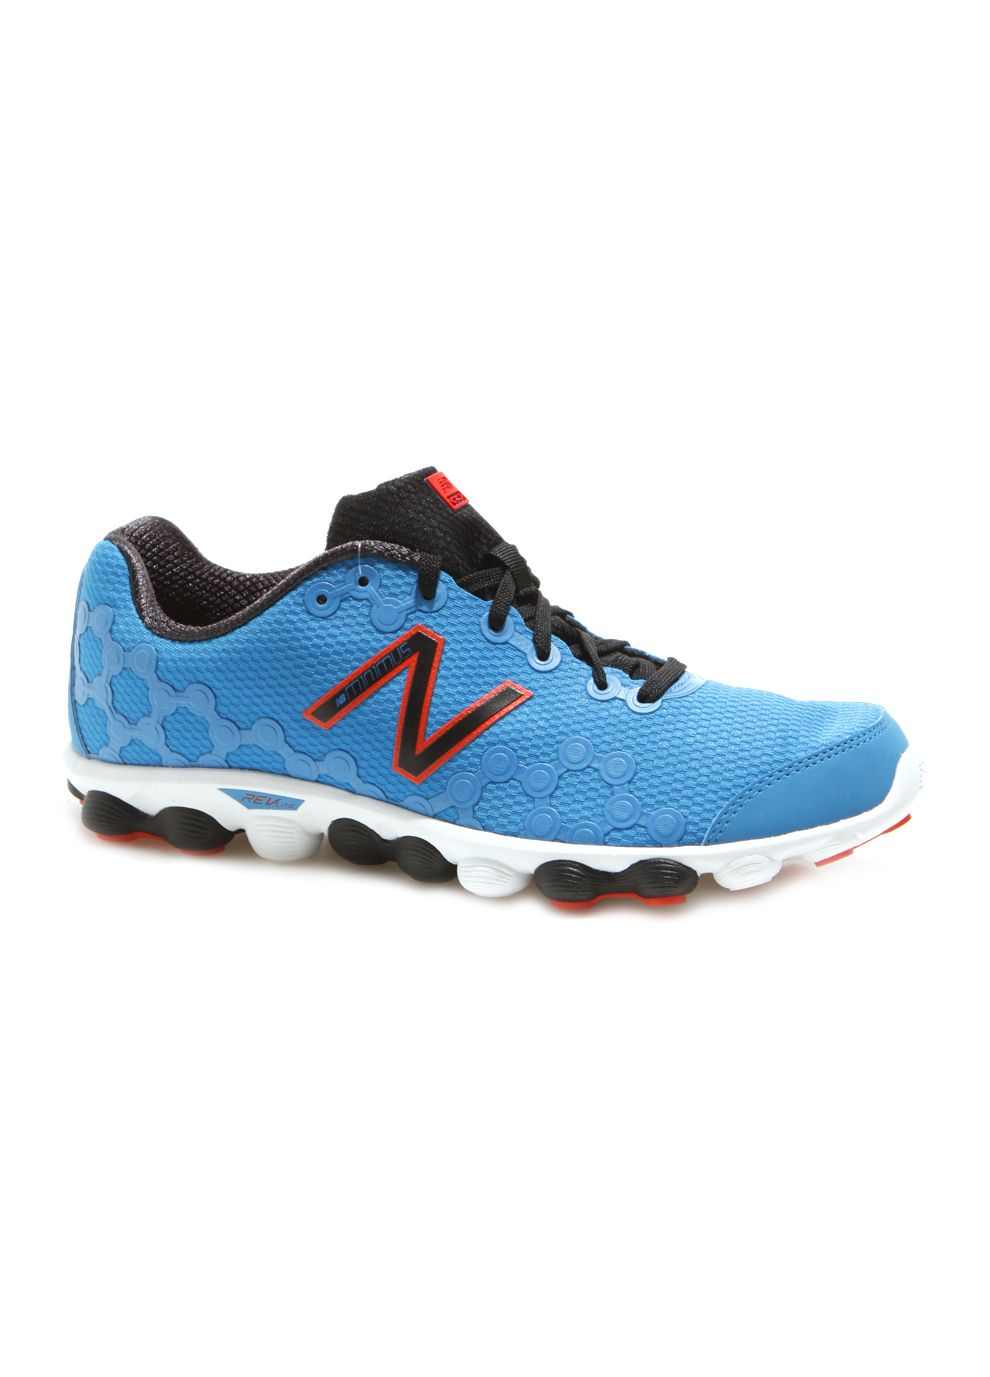 146d3a684 New Balance Mens Sports Shoes | King of the Castle | Nike free shoes ...